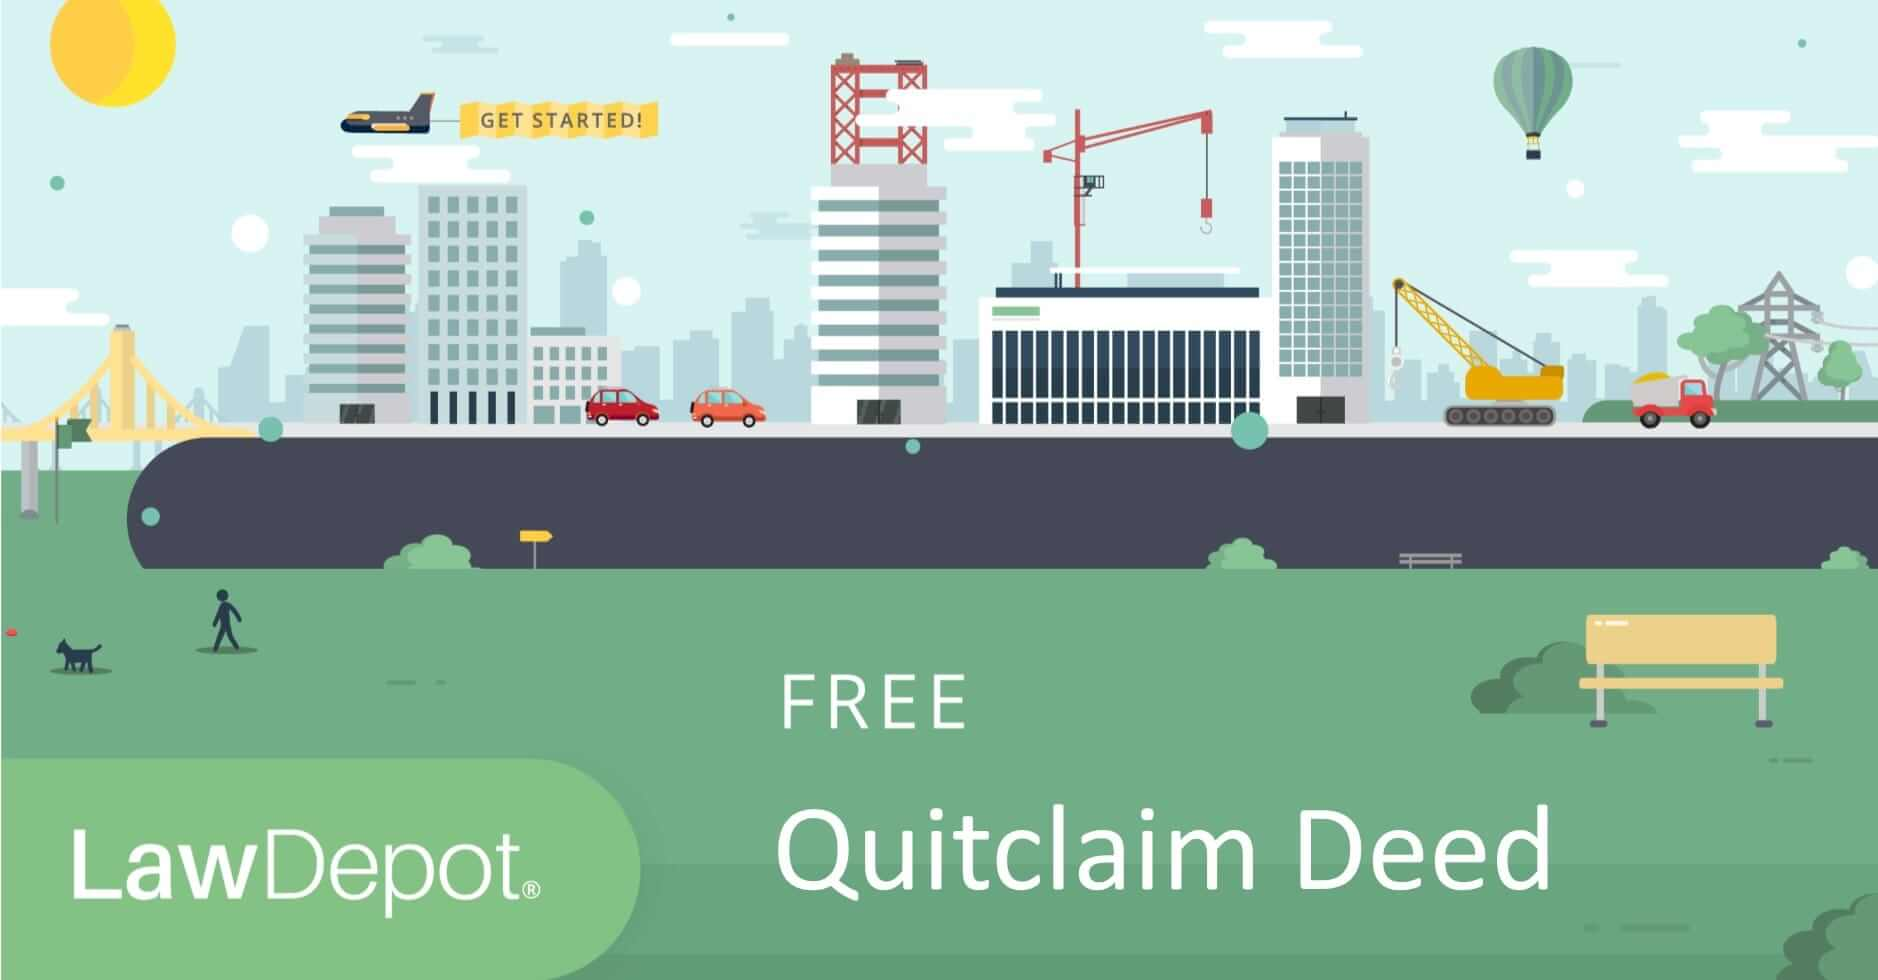 Free Quitclaim Deed - Create, Download, and Print | LawDepot (US)